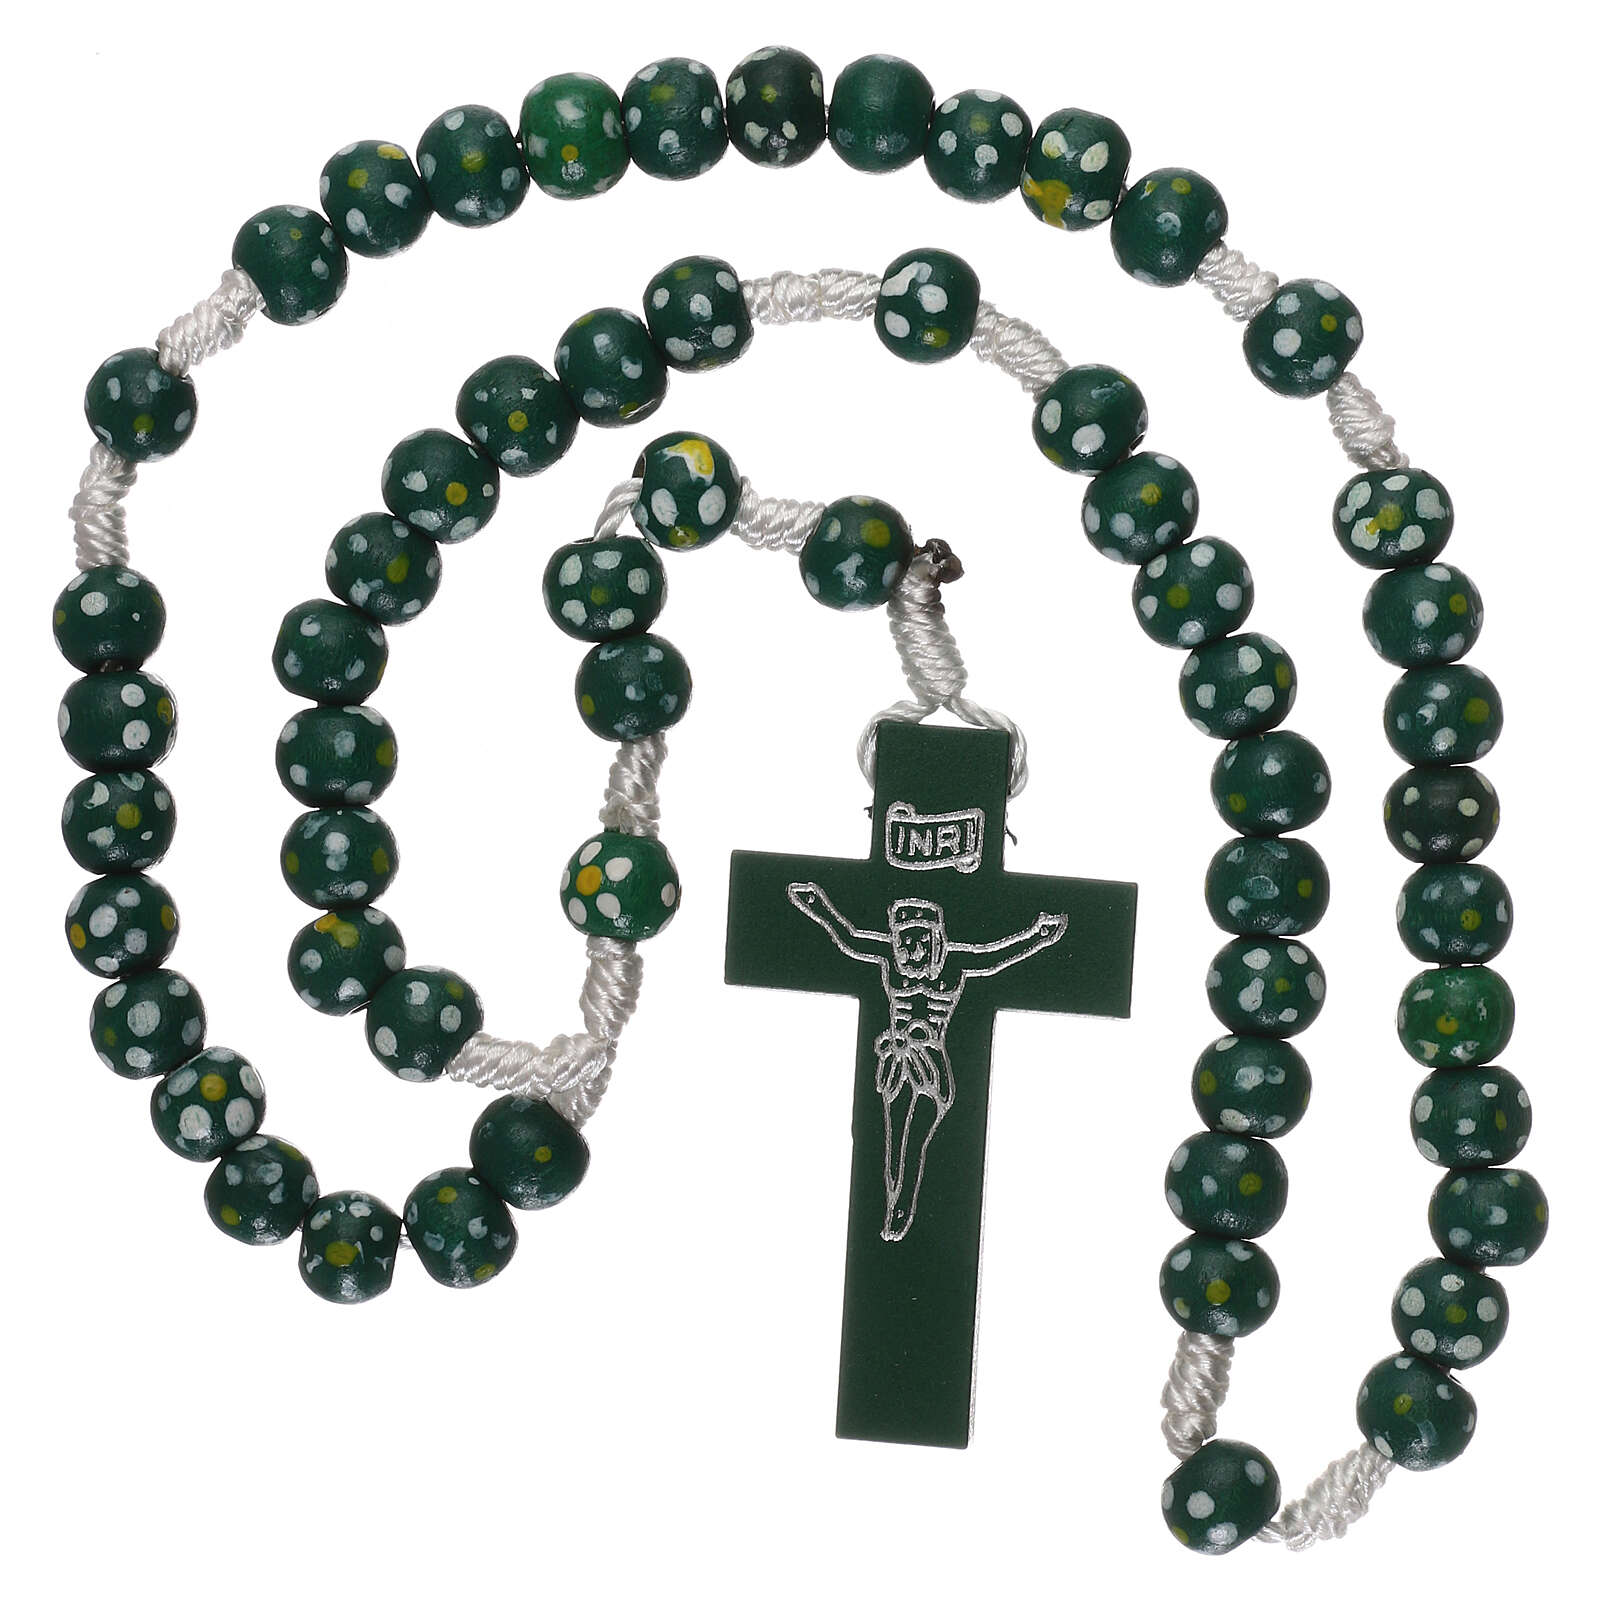 Wood rosary flower green beads 7 mm and cord 4